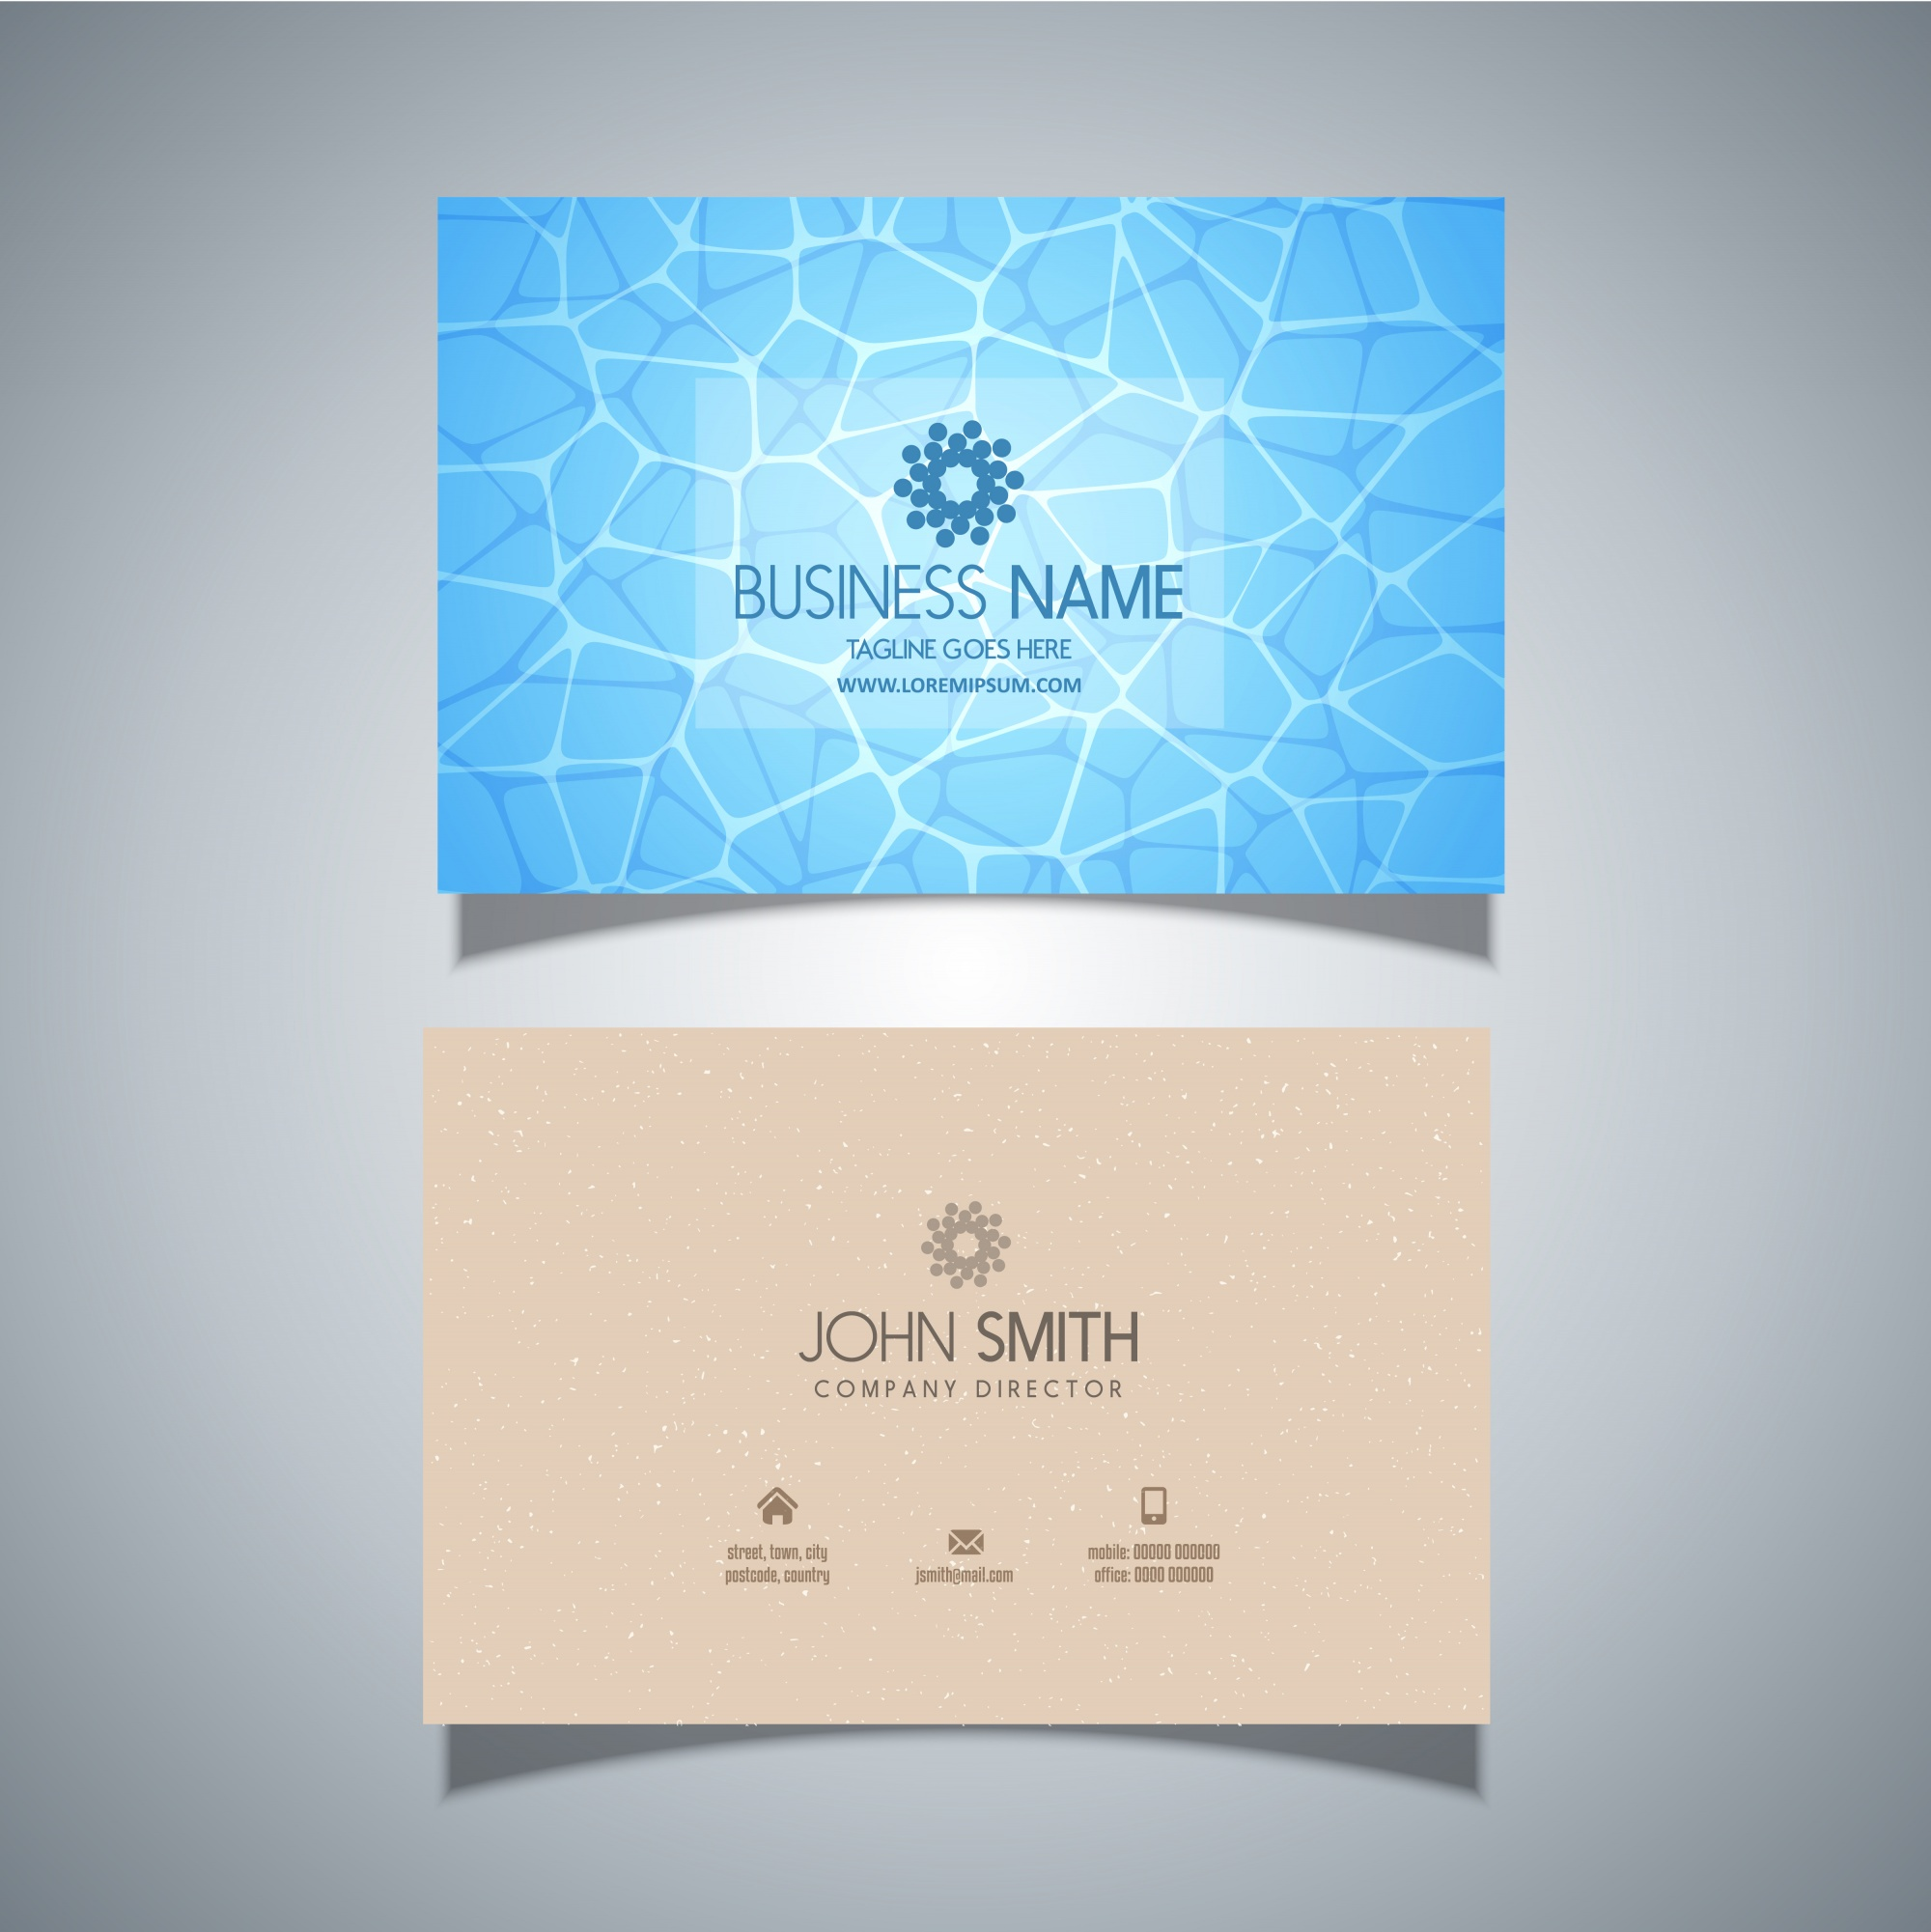 Business card template with swimming pool water texture